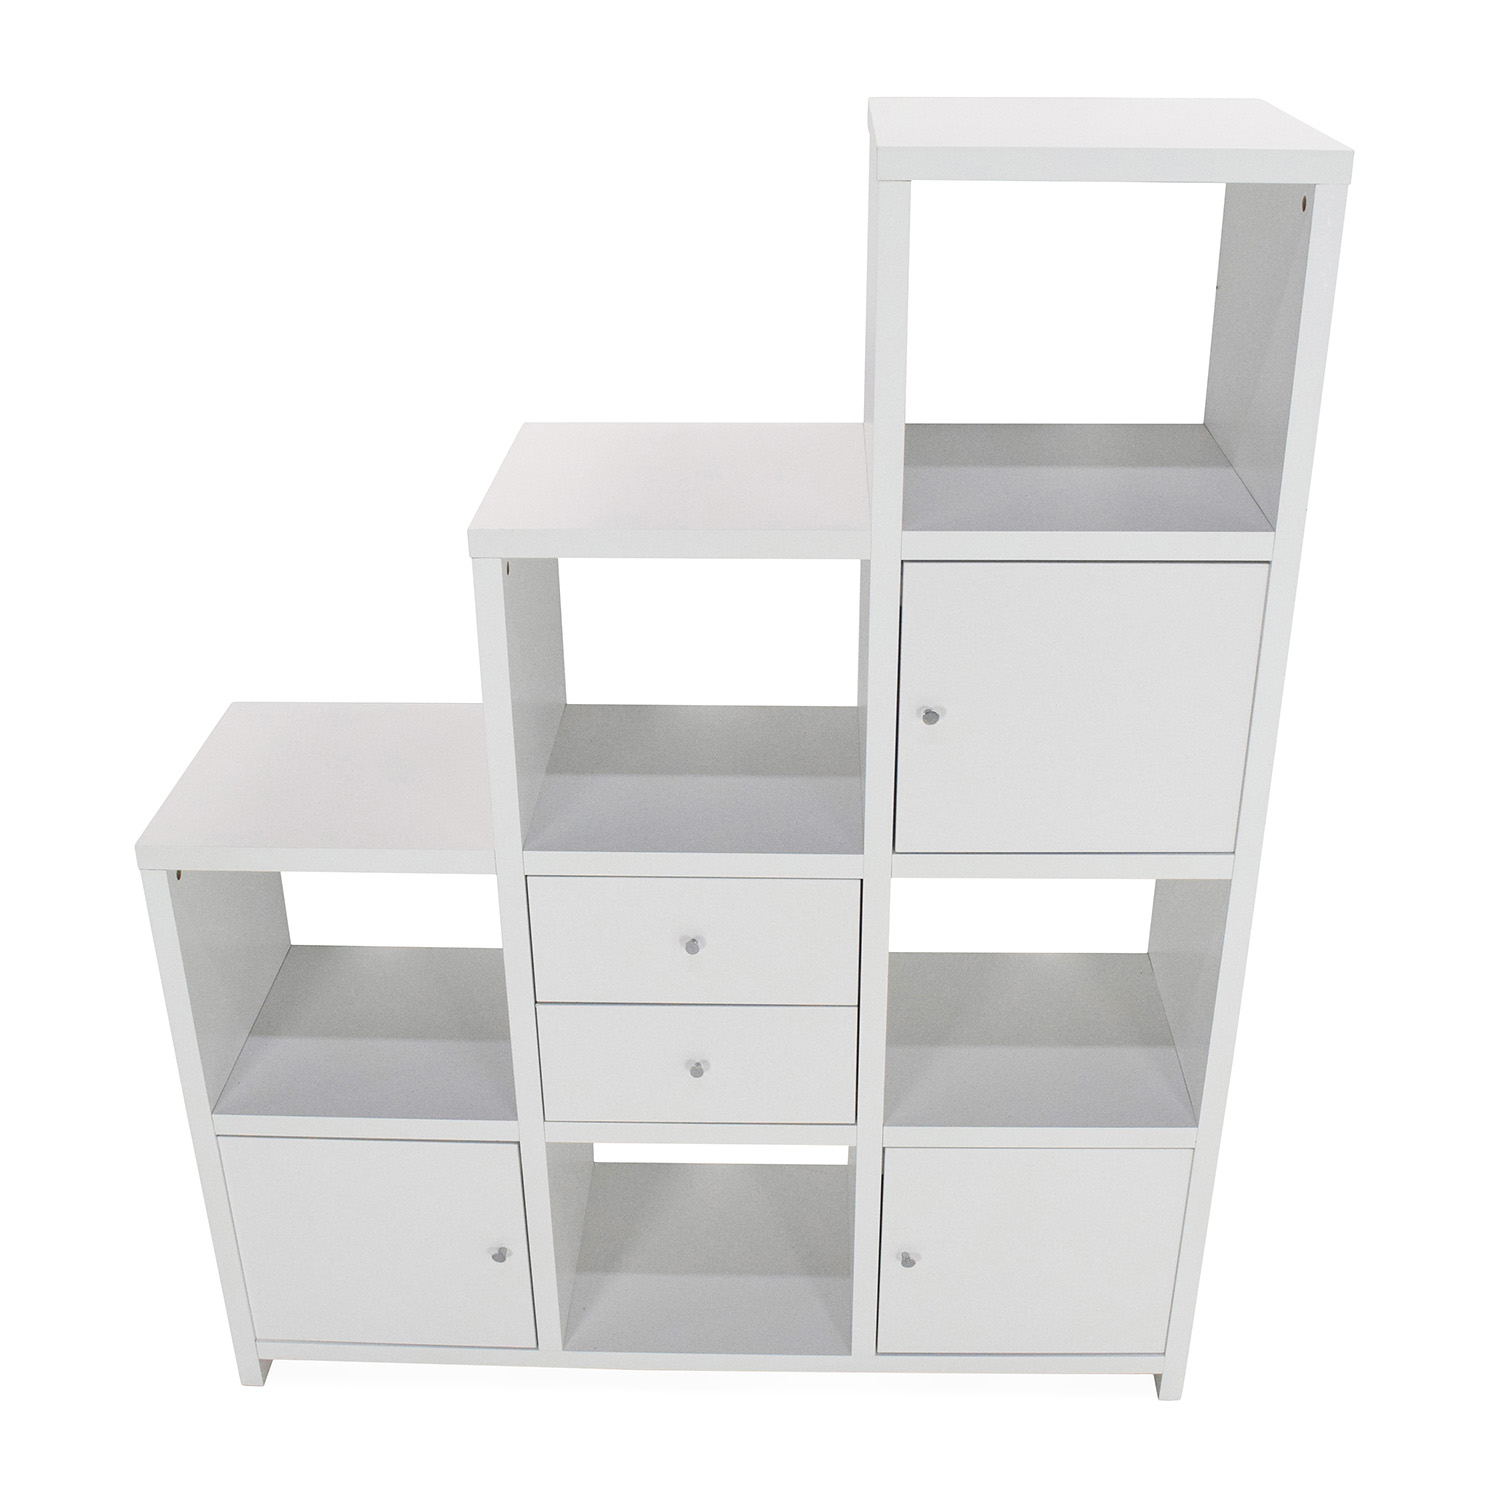 corner shelf units cubbies coaster lift wall storage bookcases furniture cube home design step bookcase ikea diy bookshelf tree chest hide finnby